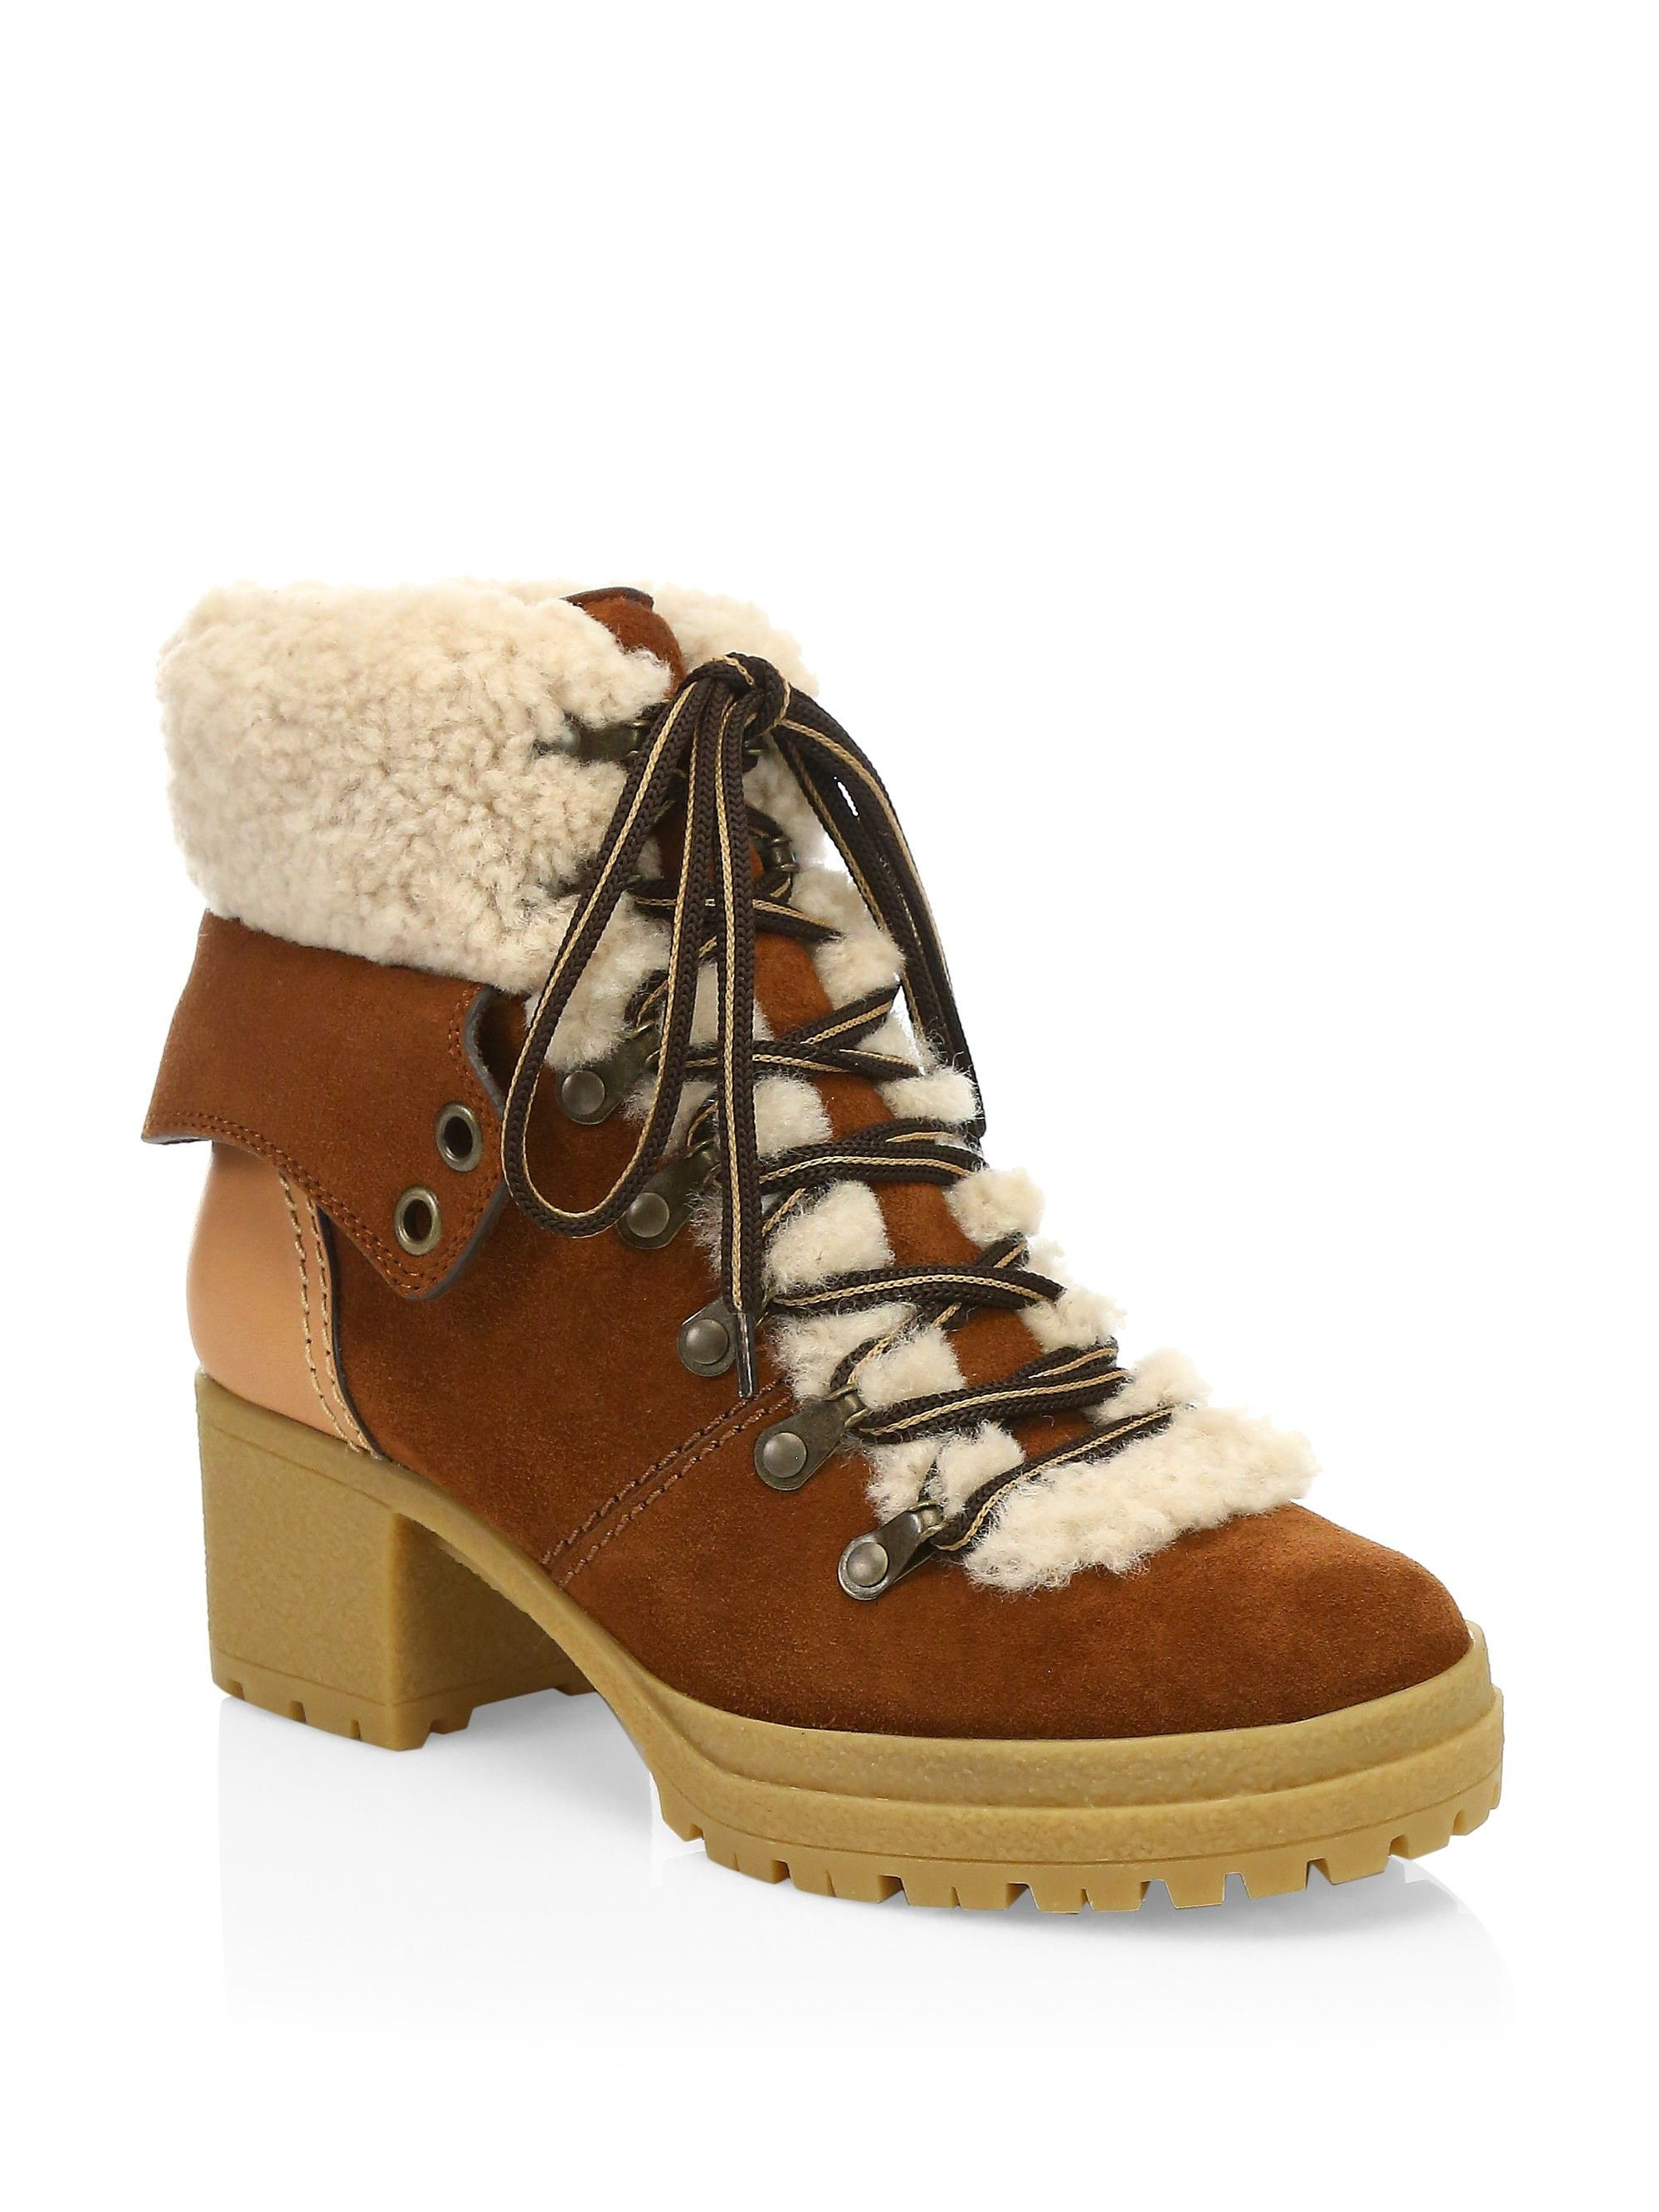 13a1826cf6ce See By Chloé Eileen Lace-Up Shearling-Lined Ankle Boots - Brown 40 (10)